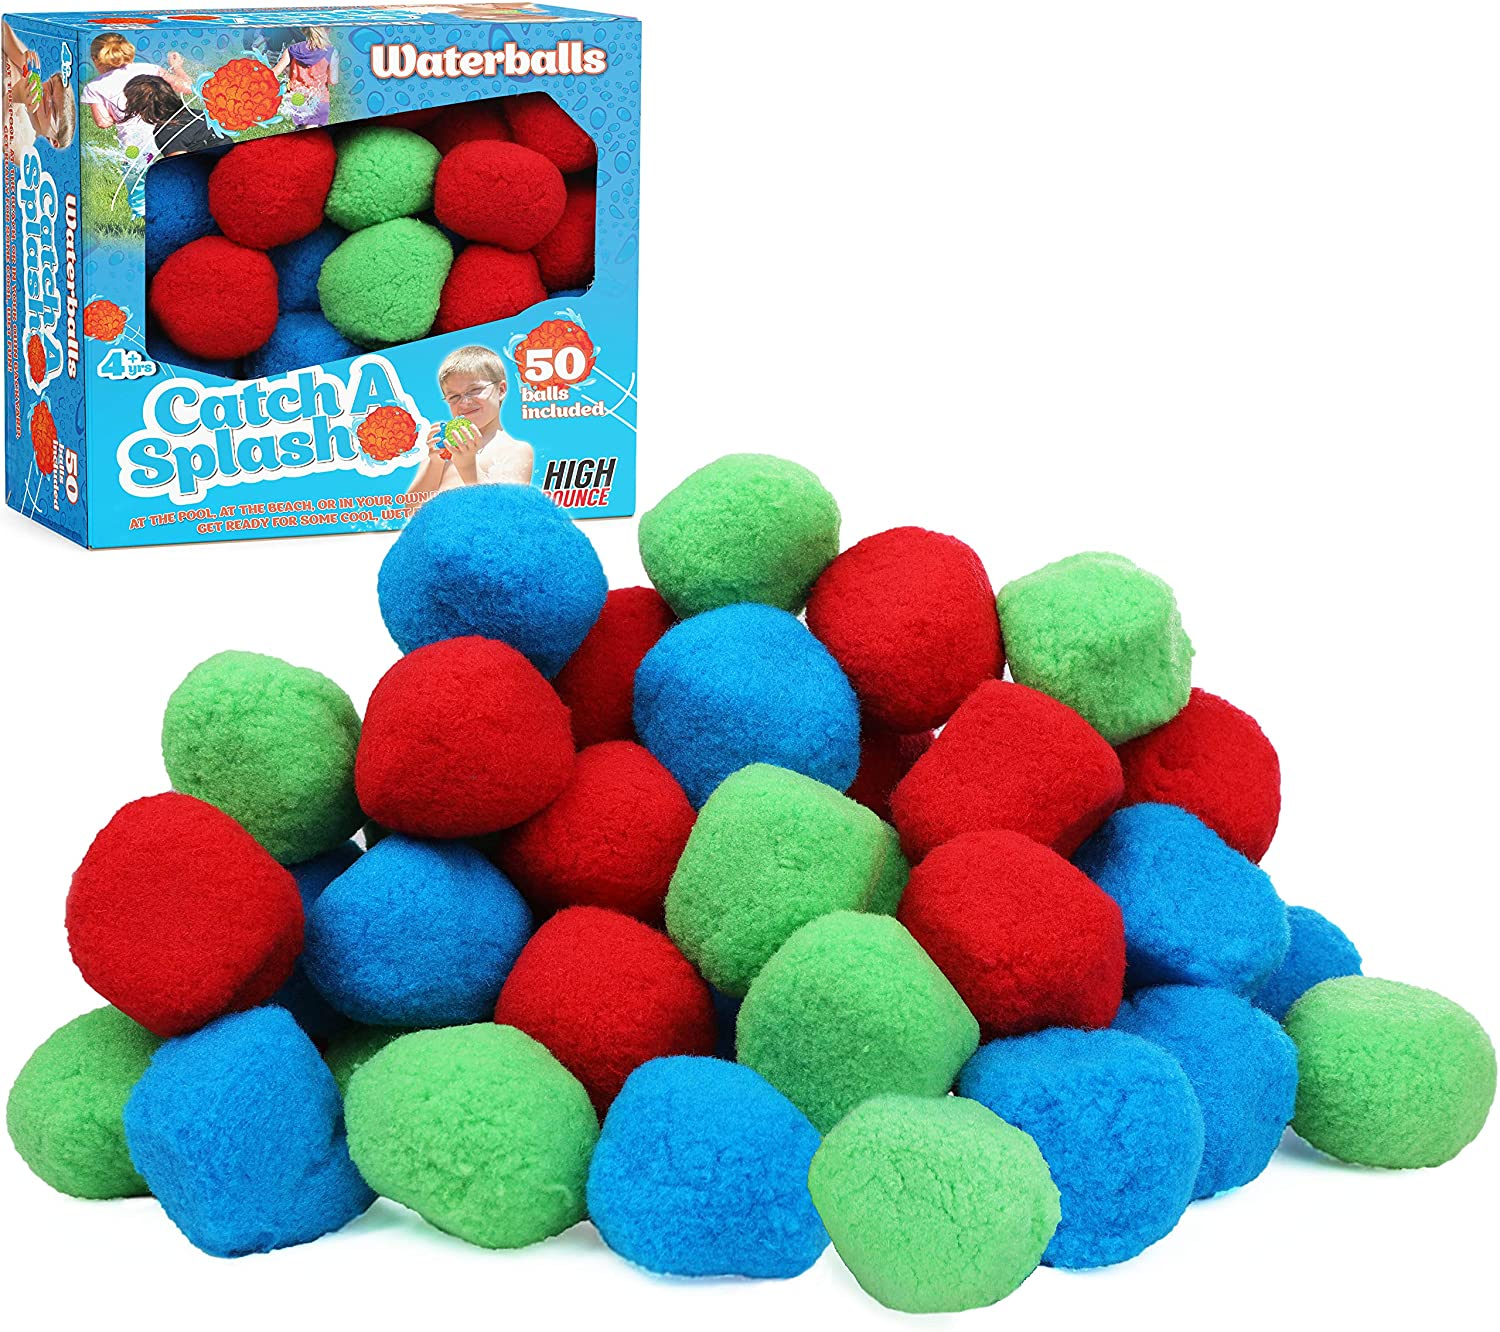 Fashionable High Bounce 50 Reusable Water Balls excellence Cotton Highly Sp - Absorbent